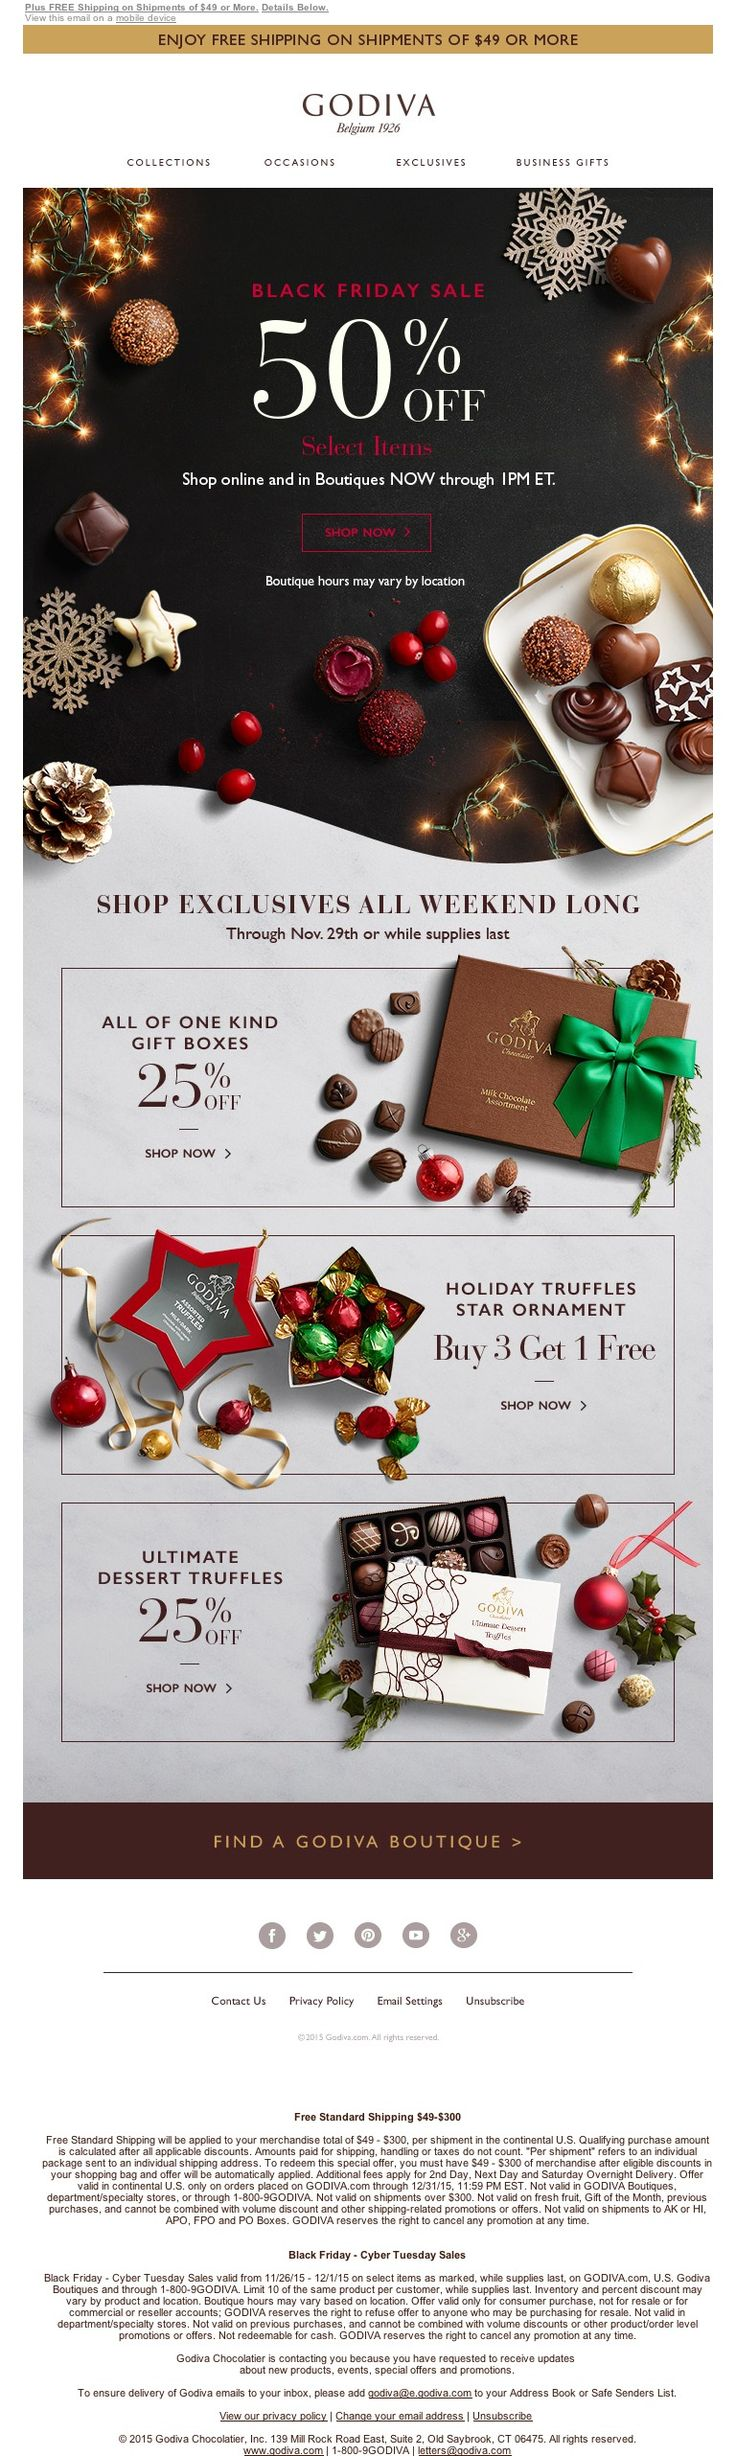 Godiva - 11/27/15 SL: HOURS LEFT: 50% Off Black Friday Sale + FREE Shipping